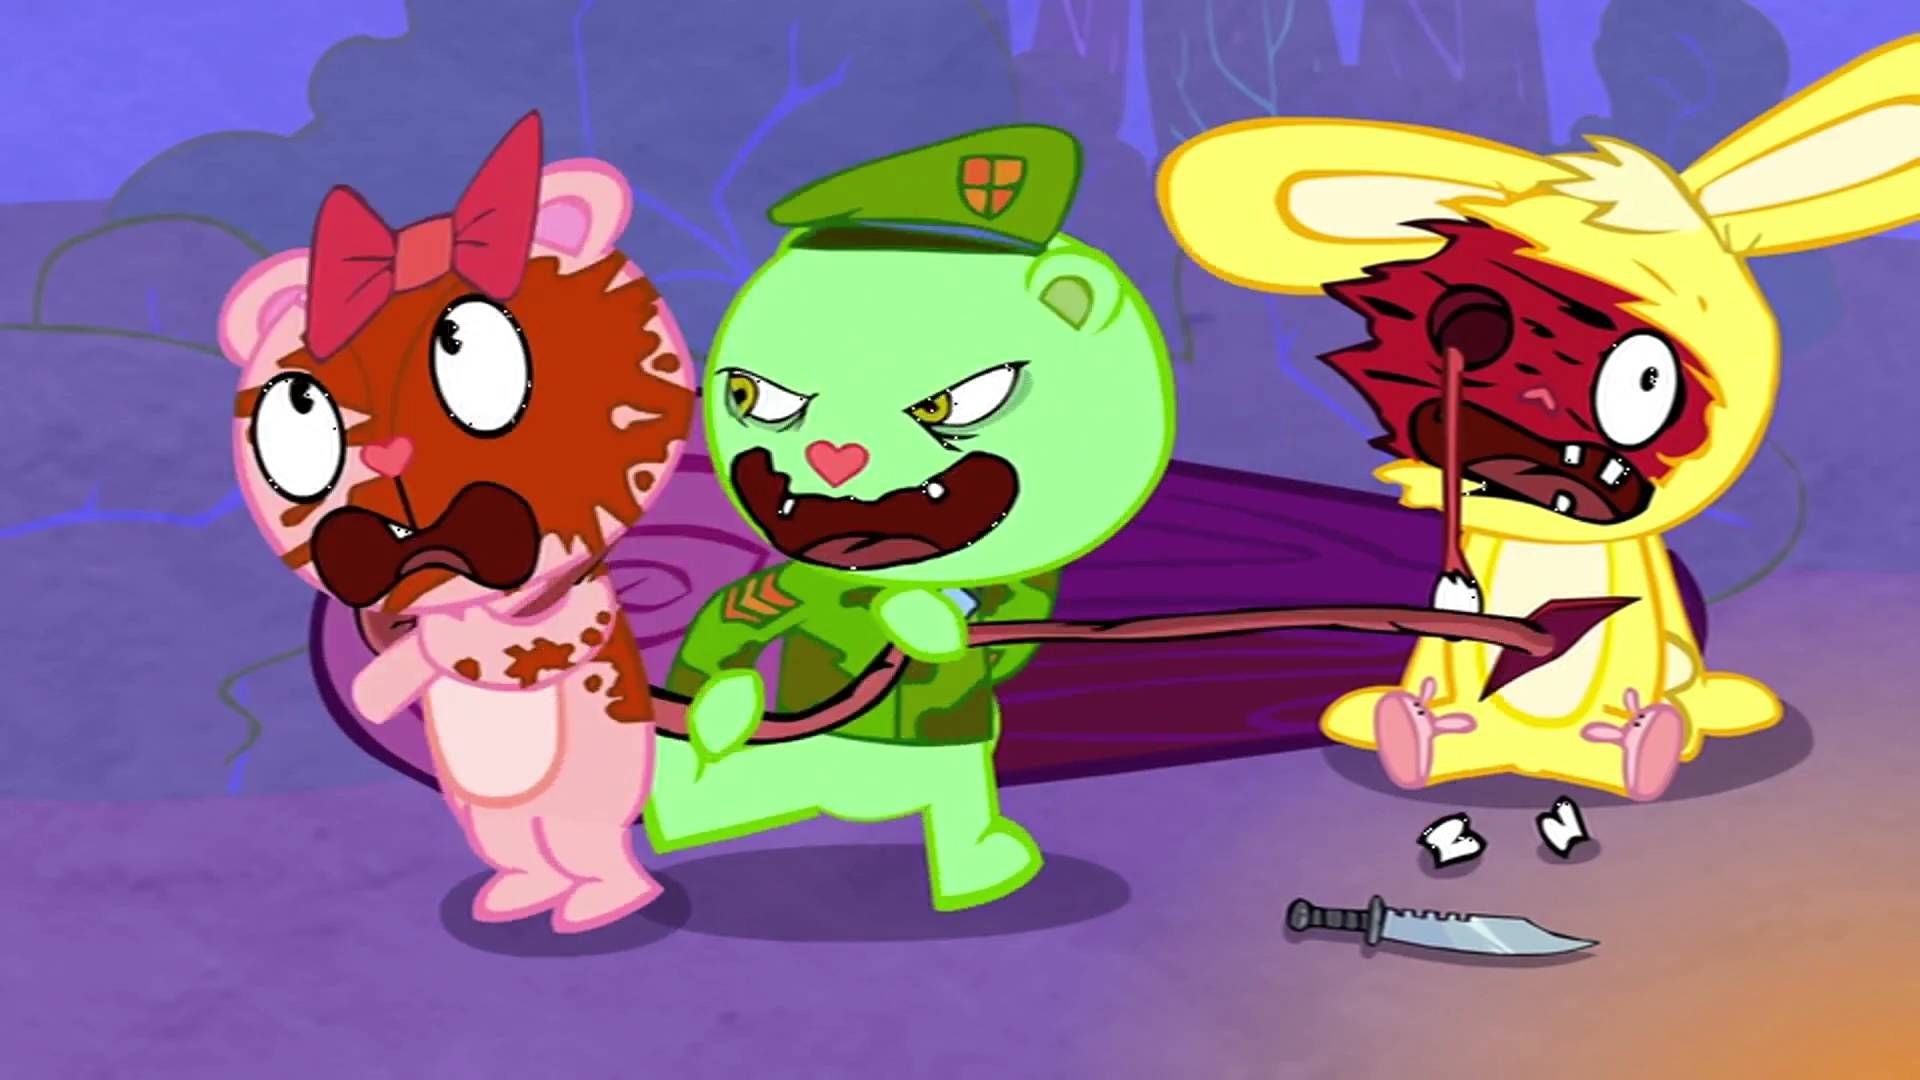 1920x1080 happy tree friends halloween marathon 7c78143f3e91c23fbe6f2e1e3102ebd6